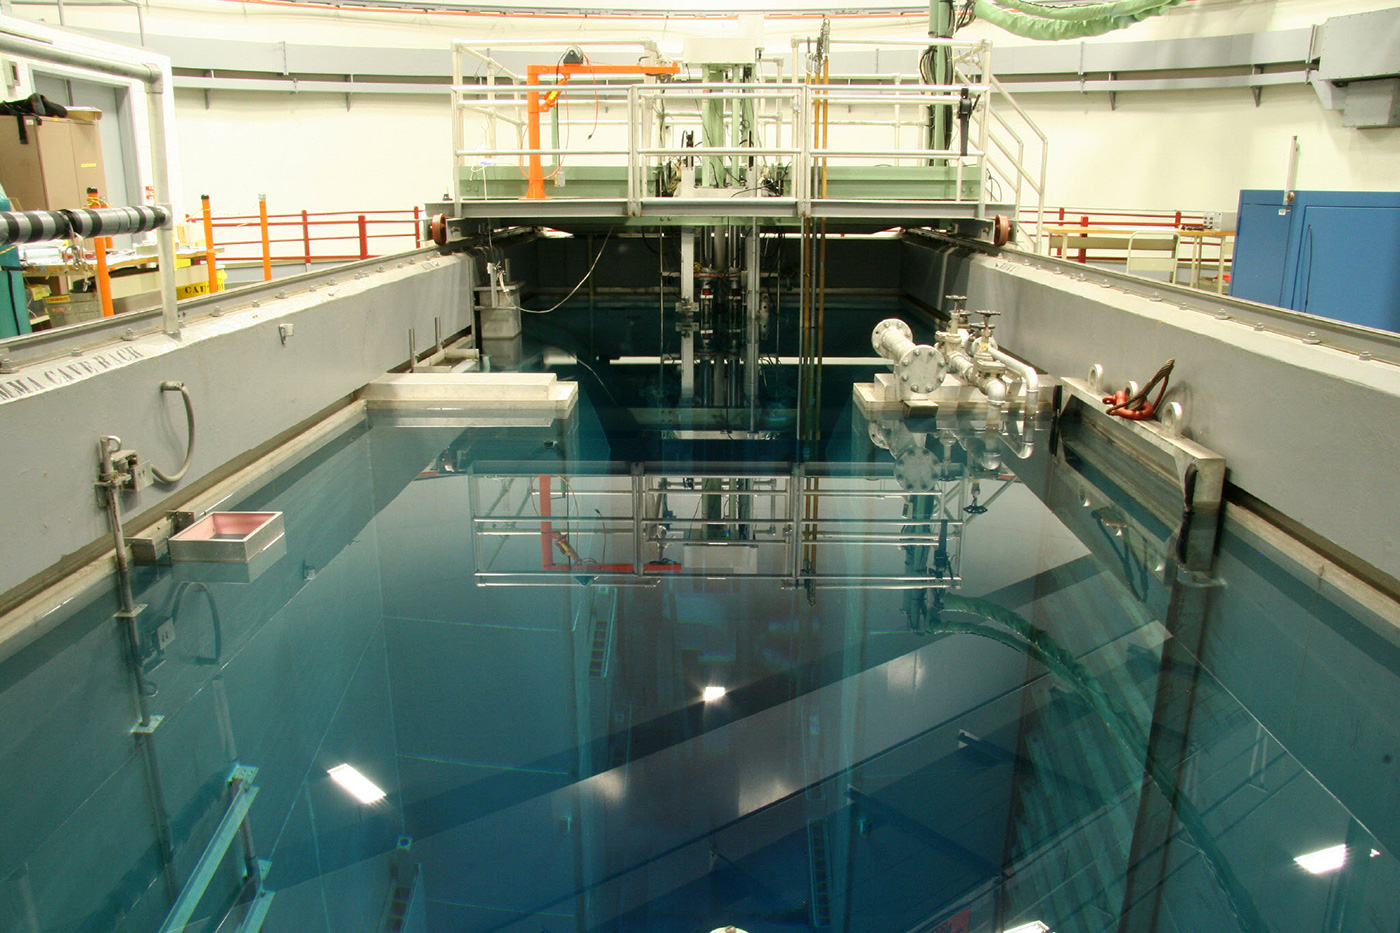 Image of the reactor pool. The Radiological Sciences Program at the University of Massachusetts Lowell offers a Bachelor of Science degree in Physics (Radiological Health Physics option), a Master of Science degree in Radiological Sciences and Protection, and a Doctor of Philosophy degree in Physics (Radiological Sciences option).